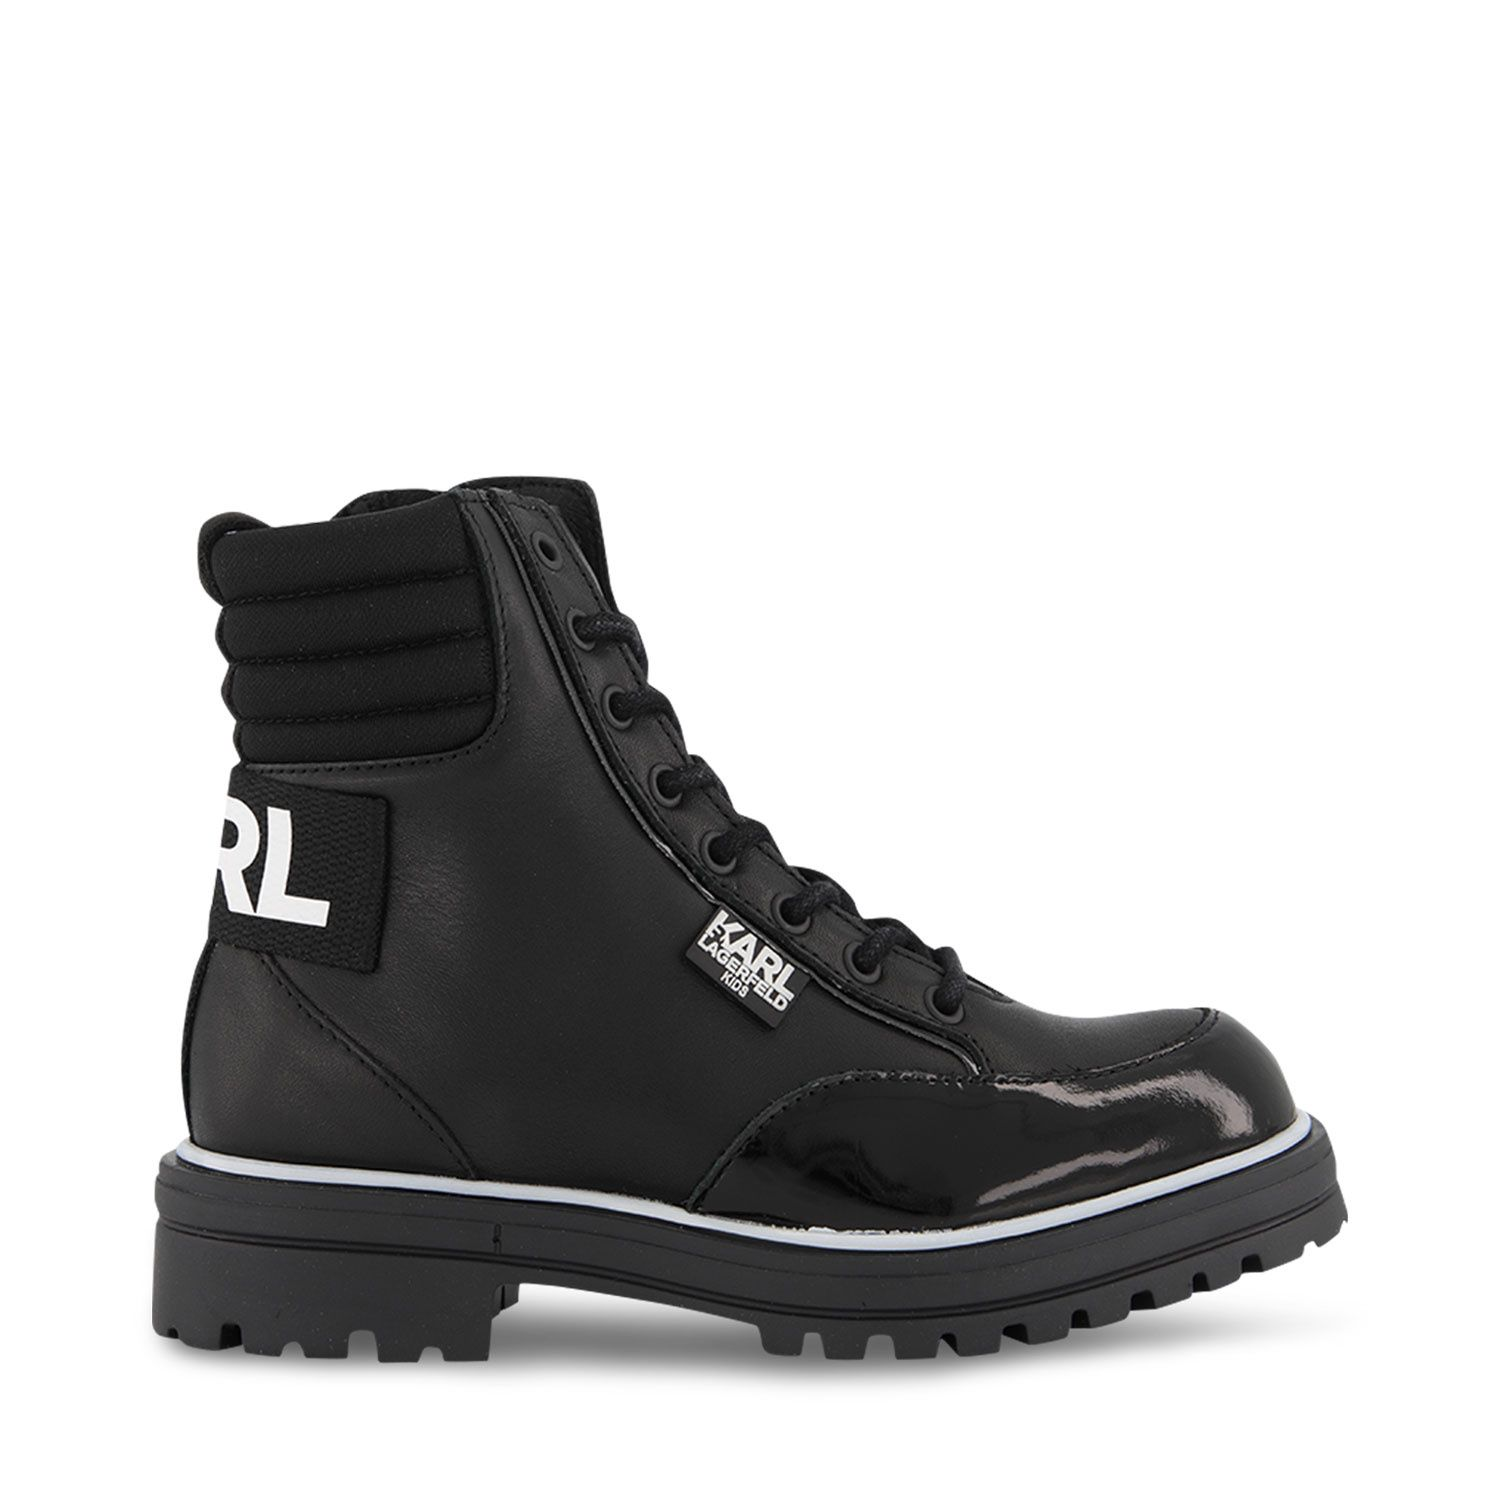 Picture of Karl Lagerfeld Z19063 kids boots black